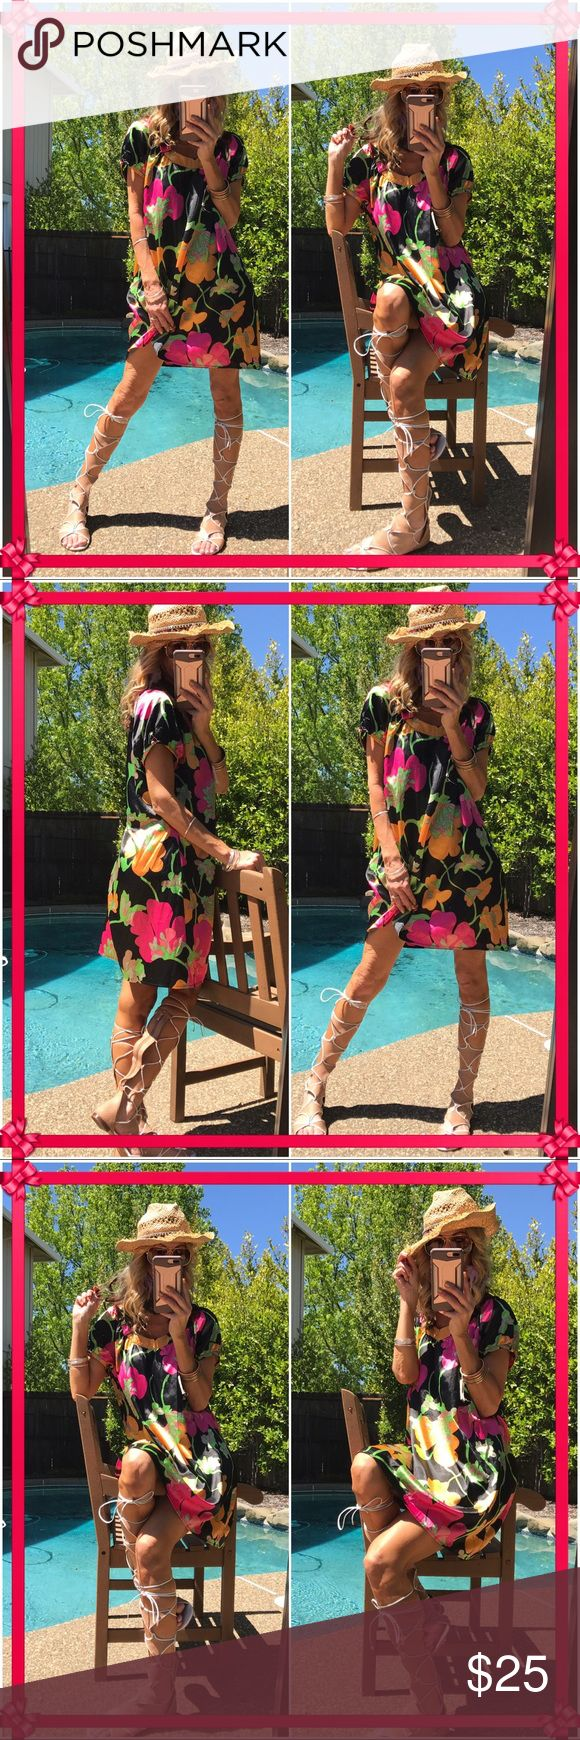 👛Bcbg👛 Floral Bcbg max sunnie, omg I mean look at this piece!. Full of vibrant classy chicness. Just needs pressing as wrinkles easily. Great to perfect condition! BCBGMaxAzria Dresses Midi